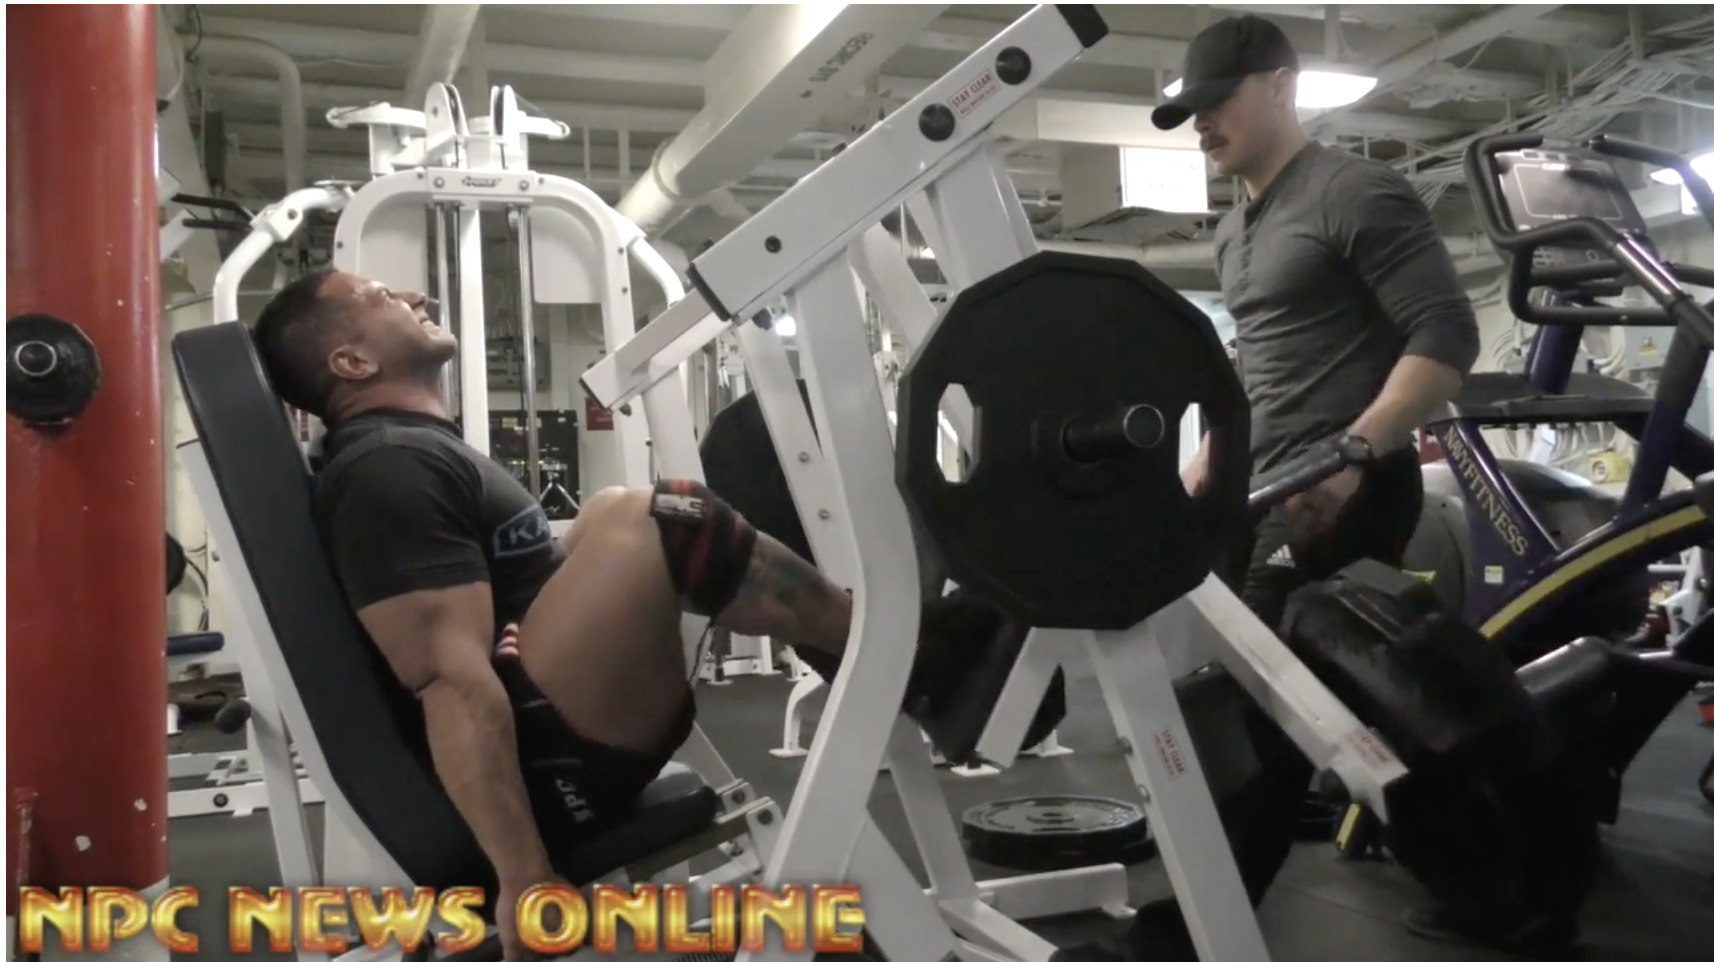 Domenick Dibenedetto, IFBB Classic Physique Pro gets in a leg workout and shares his story aboard the USS Iwo Jima